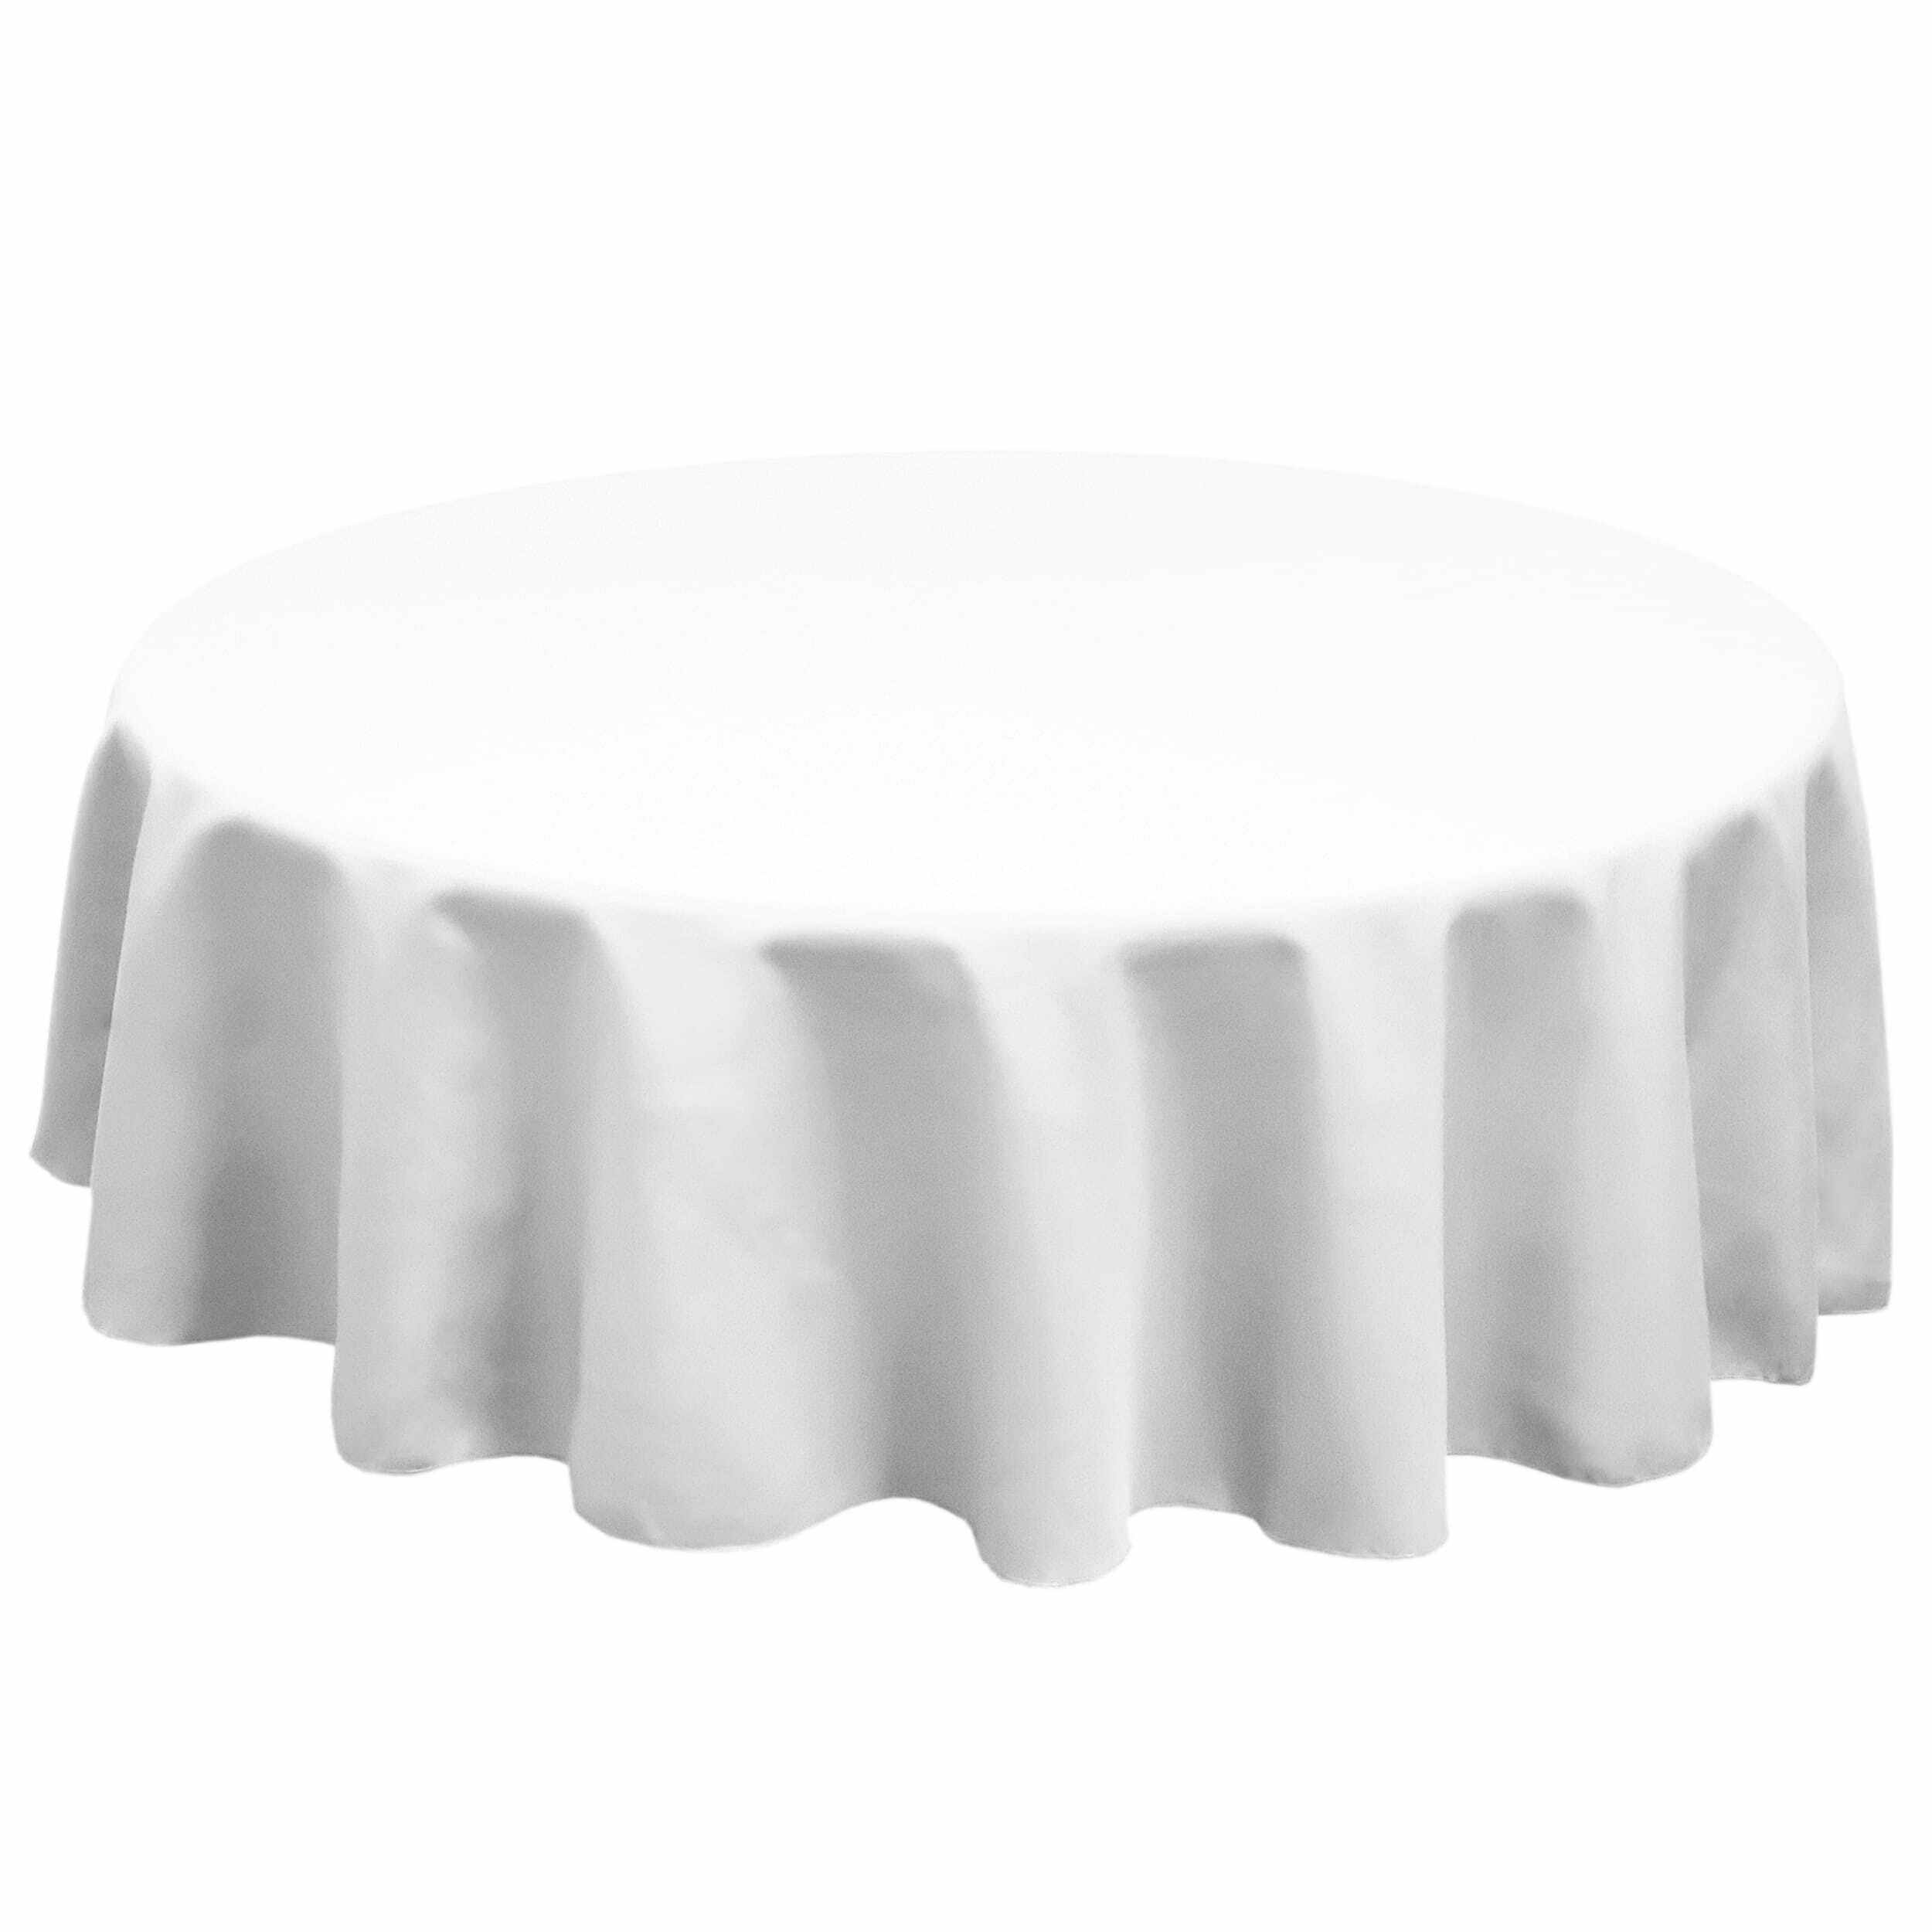 Simplypoly Round Party Tablecloths